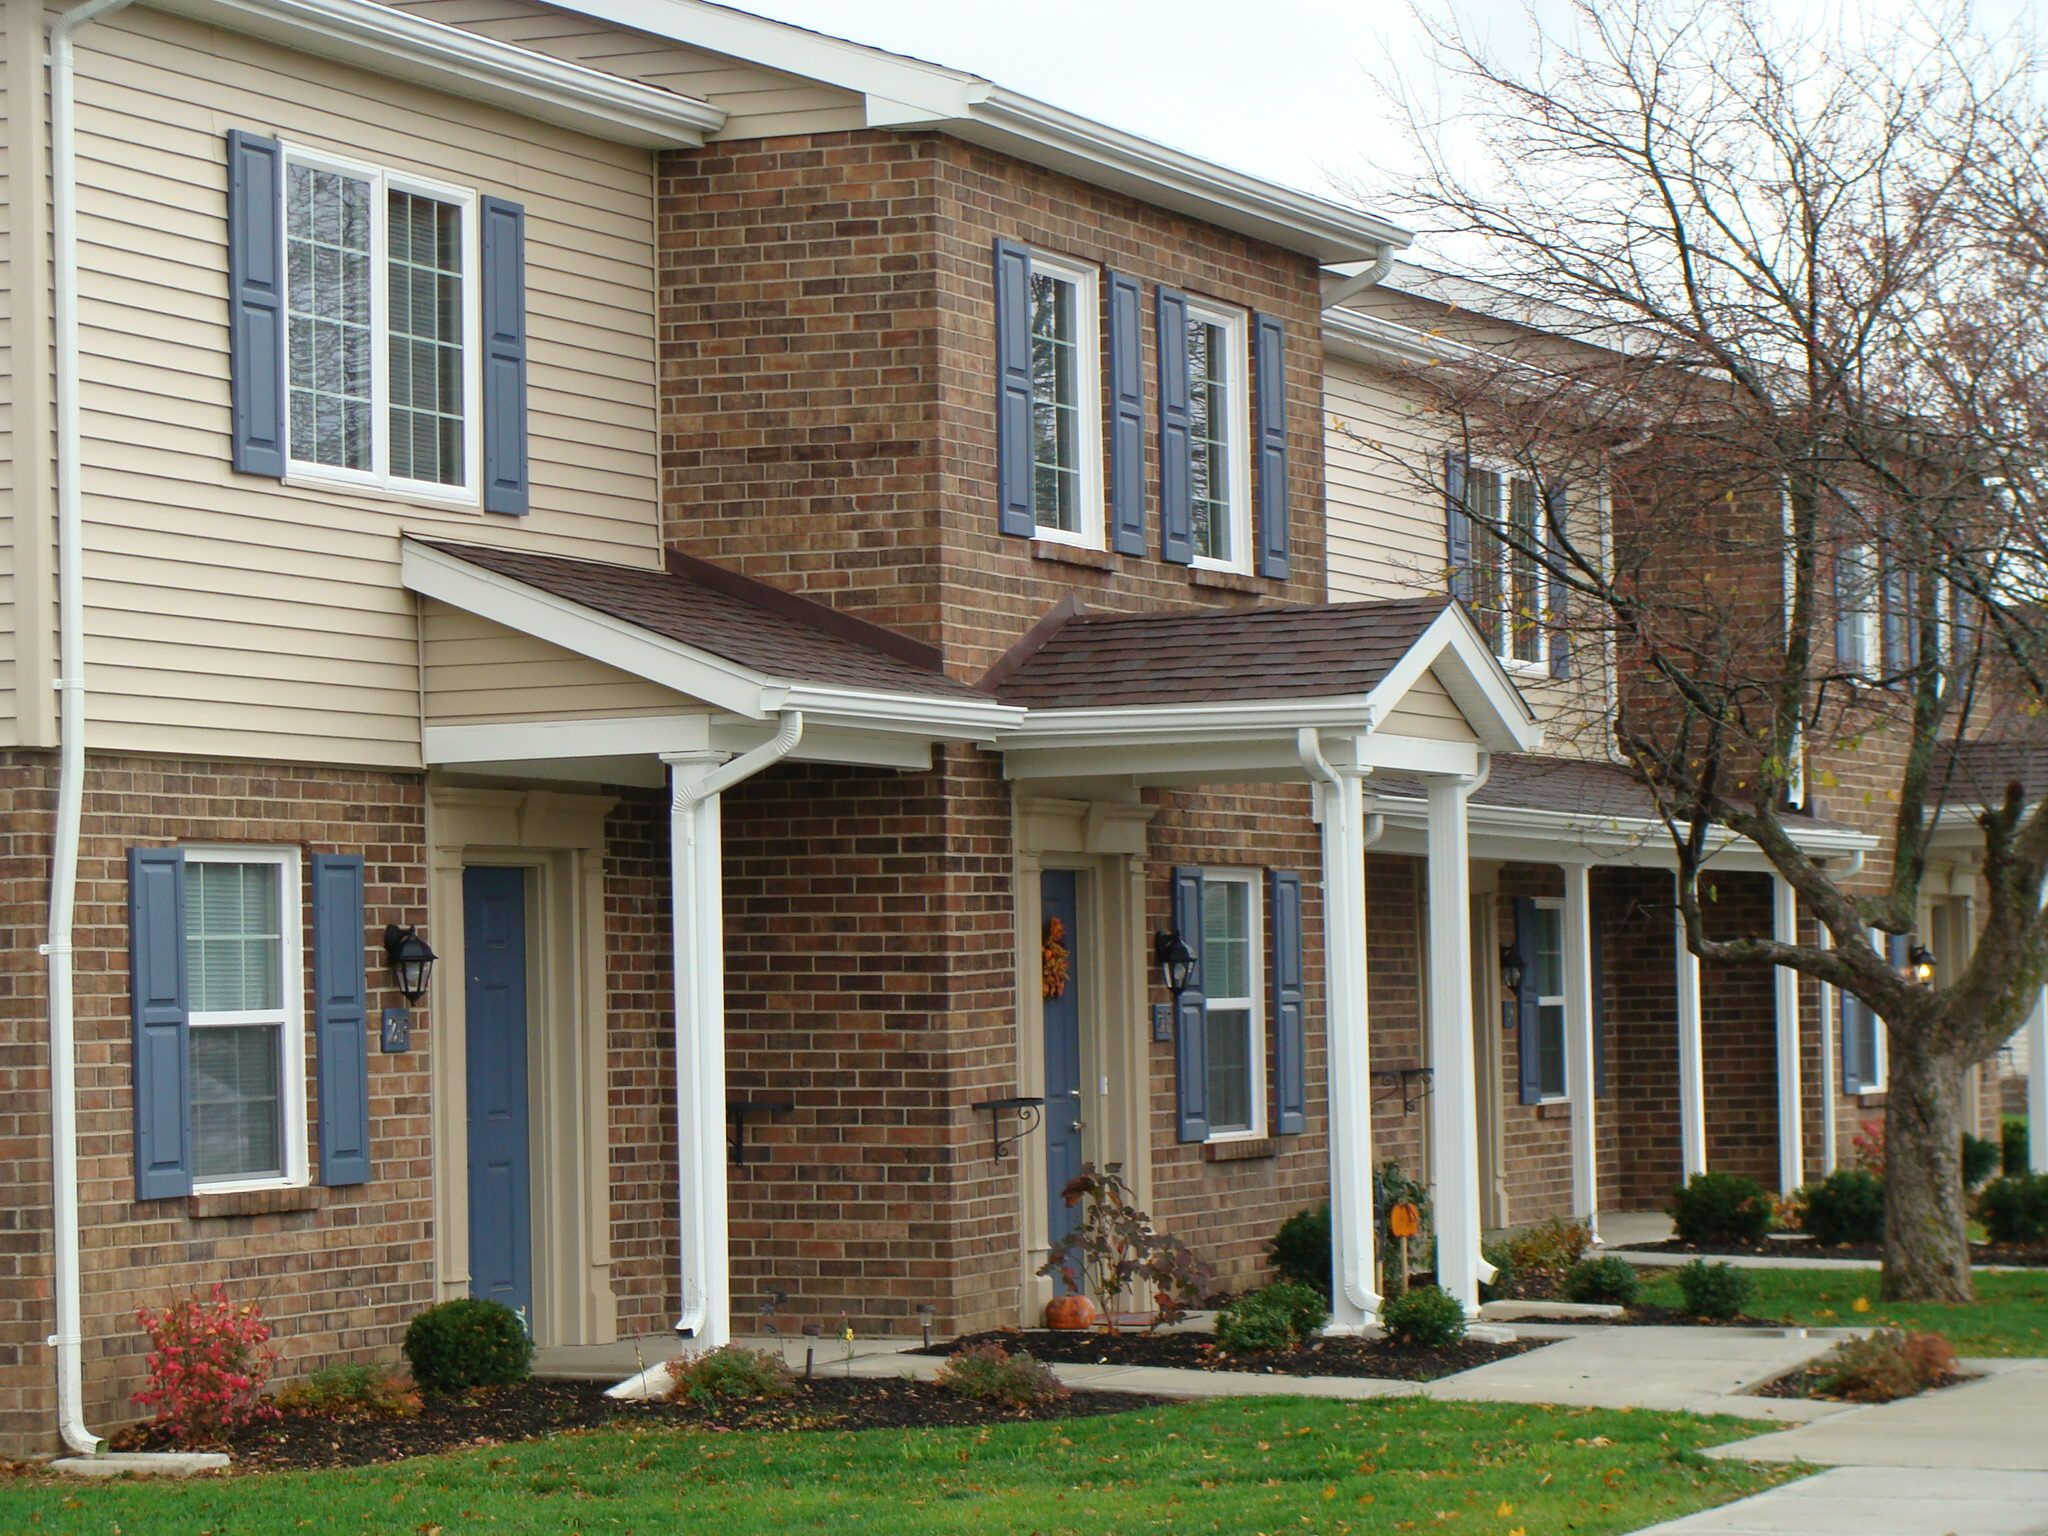 House For Rent In Lima Ohio | House For Rent